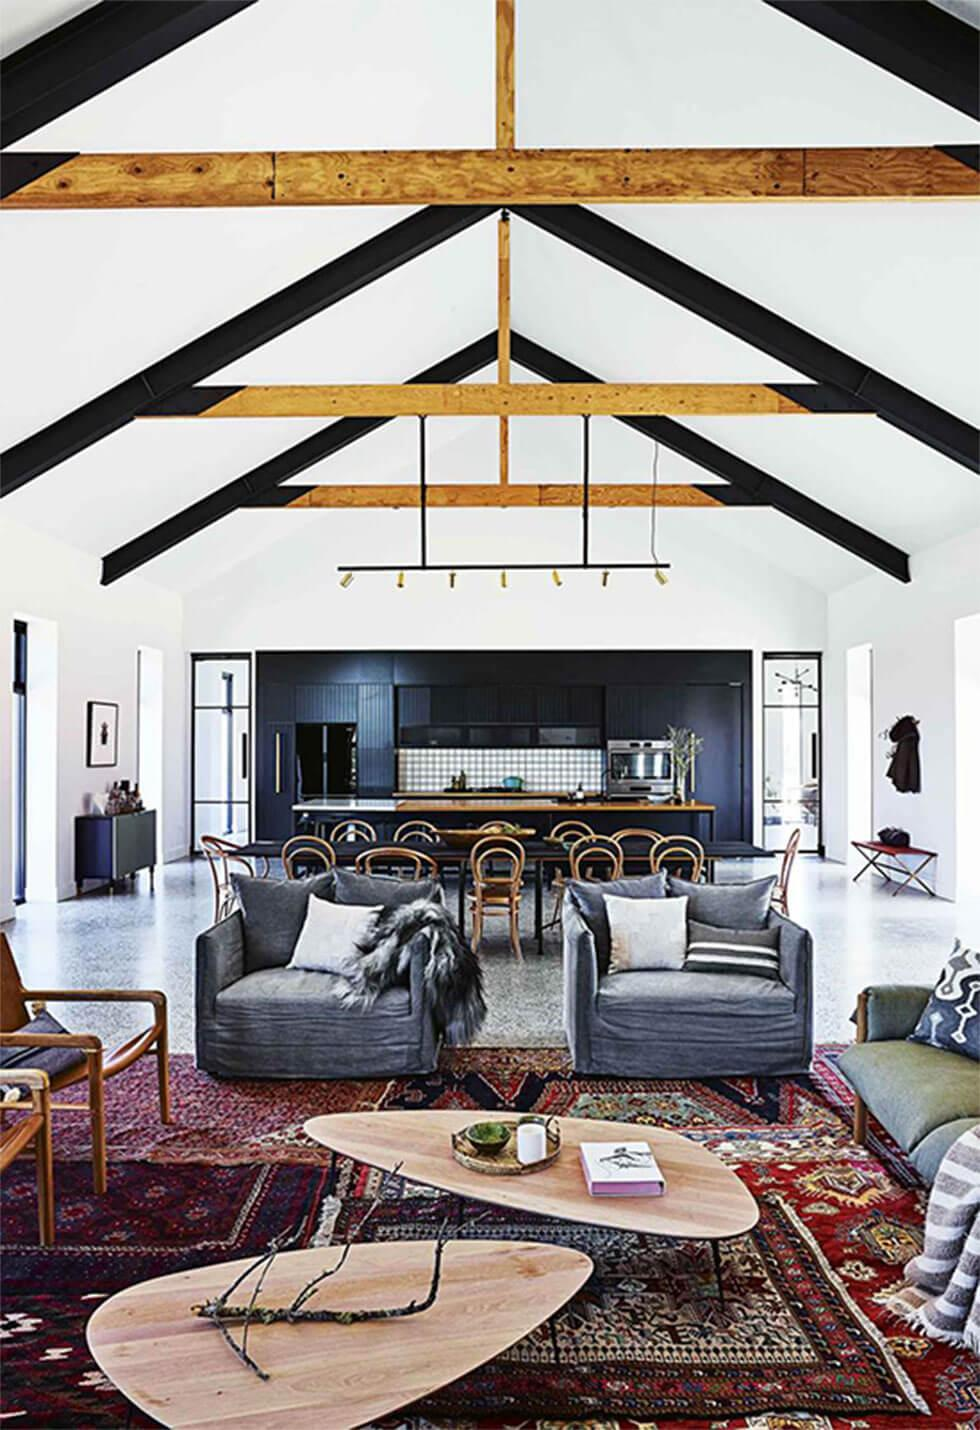 An open plan farmhouse living space with high ceilings and exposed beams, layered rugs, a dark feature wall and large grey armchairs